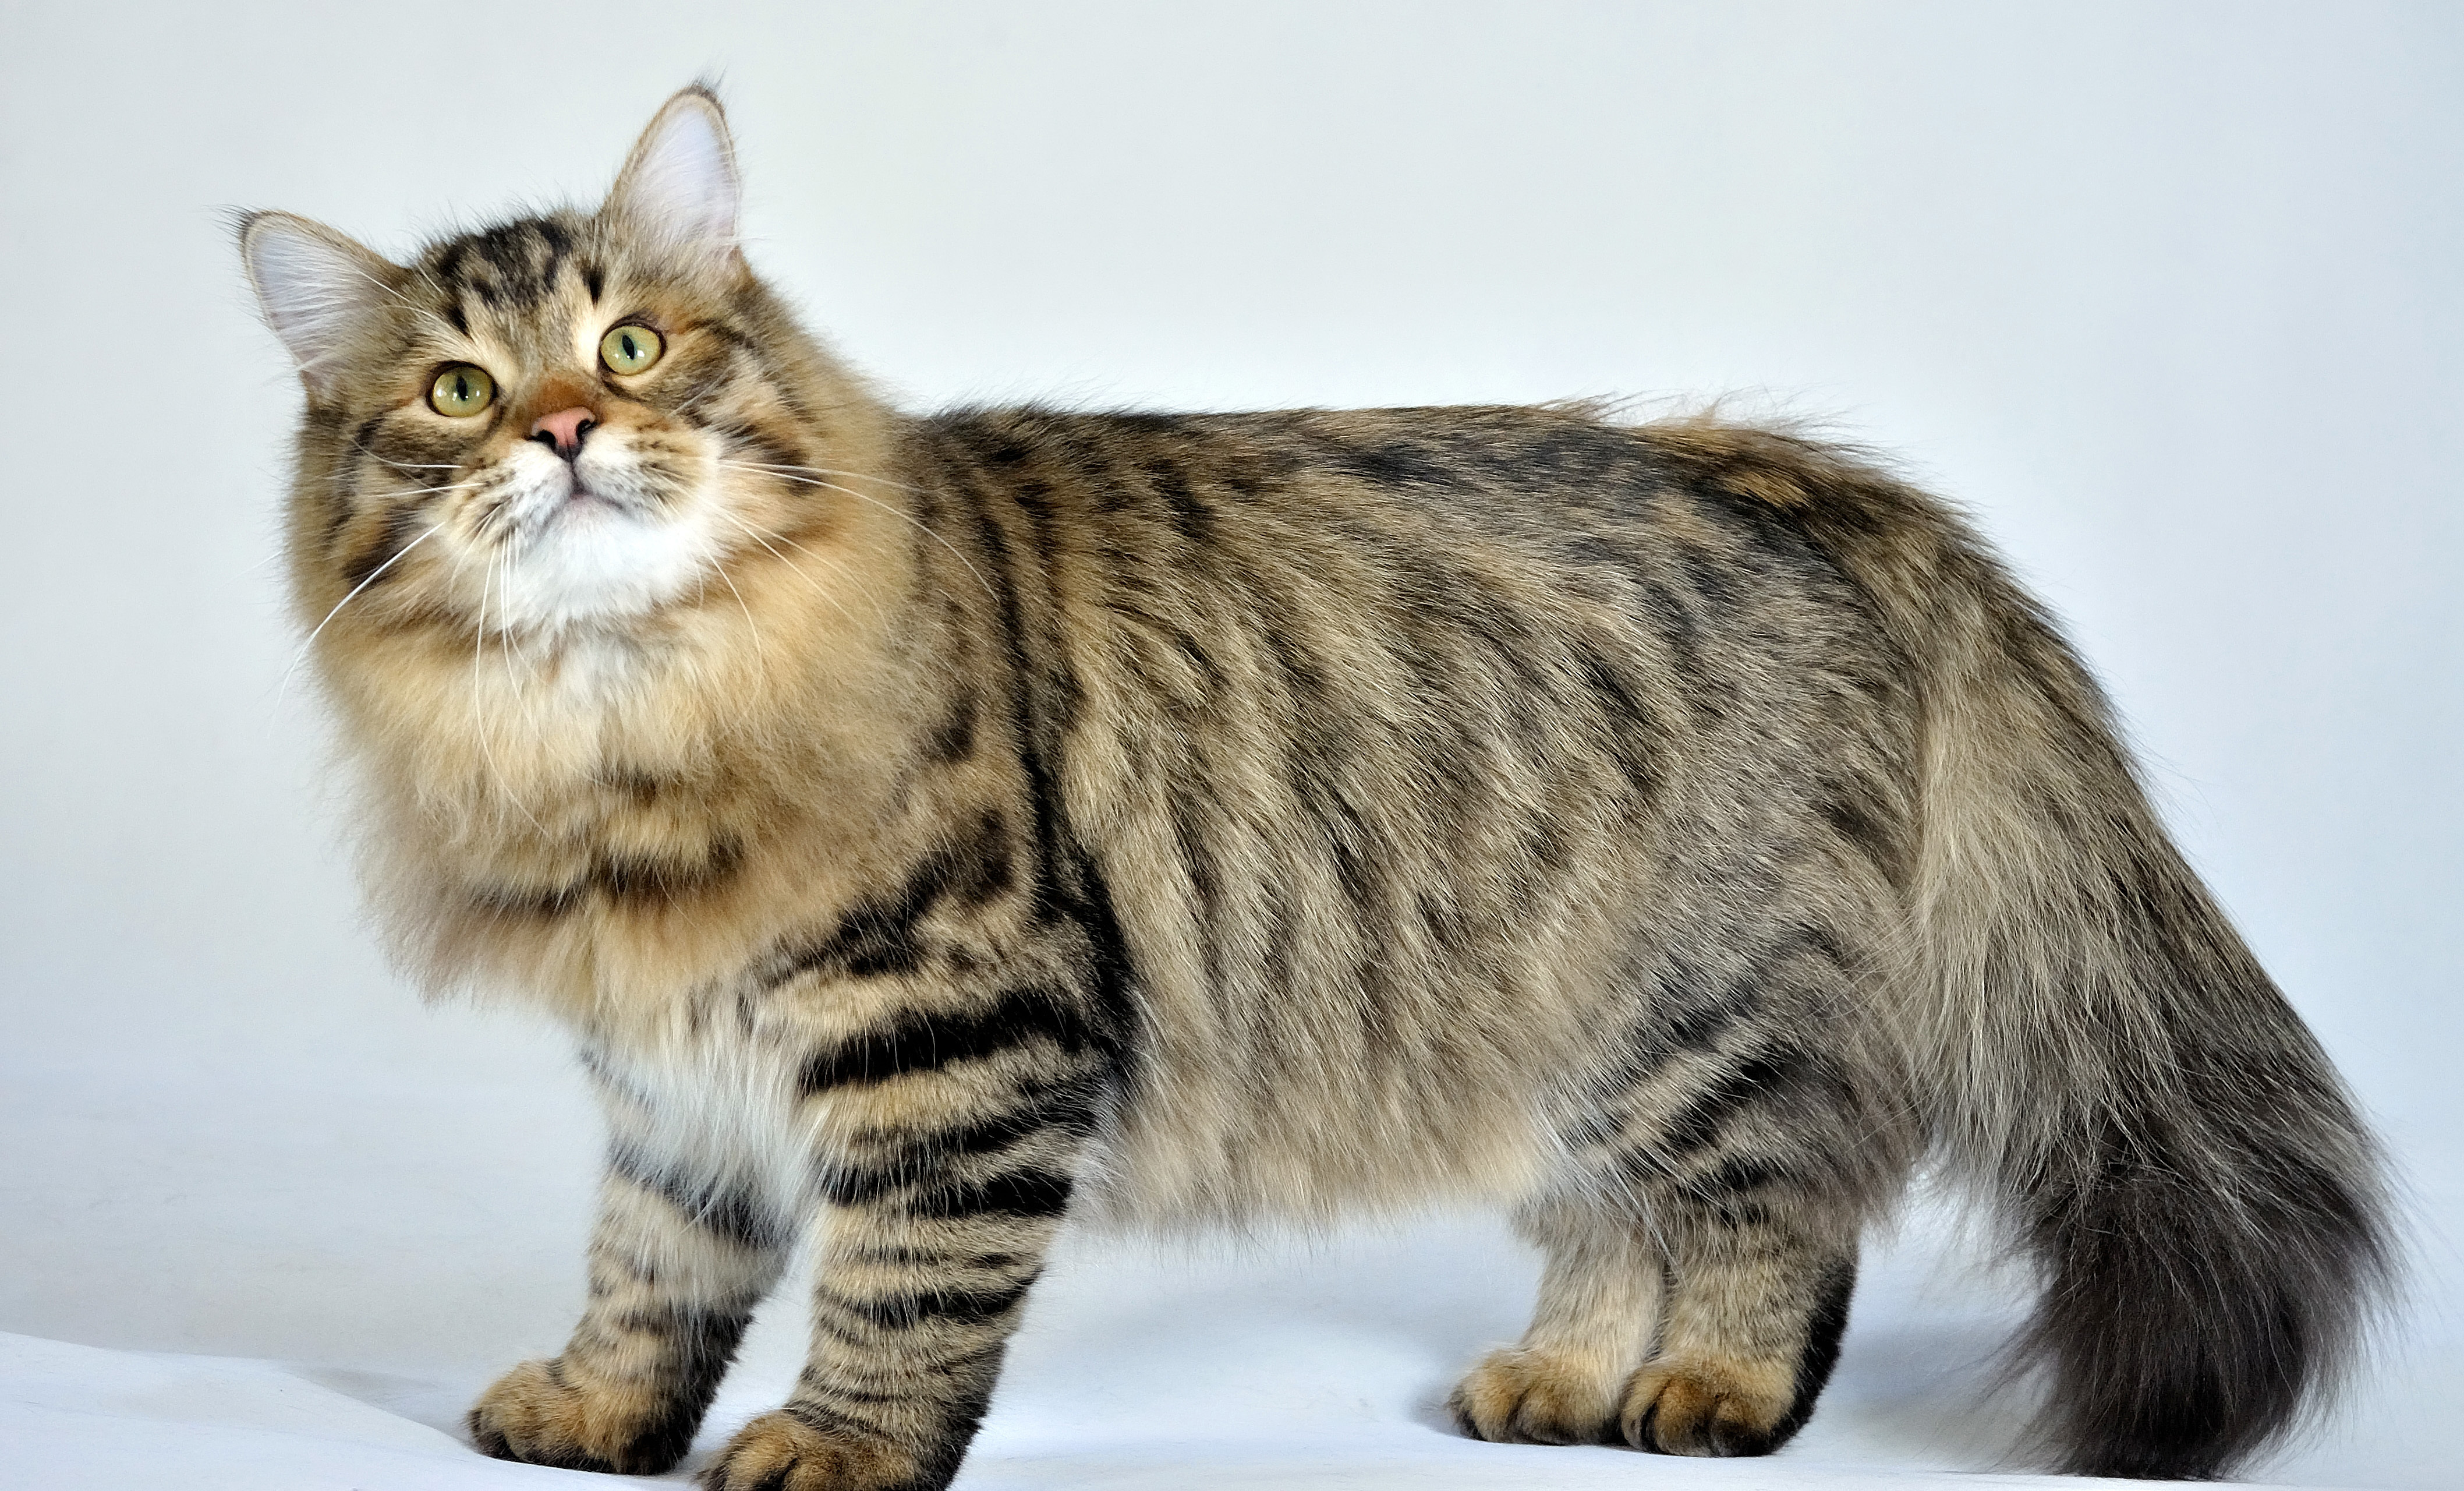 Cat Facts, History, Useful Information and Amazing Pictures